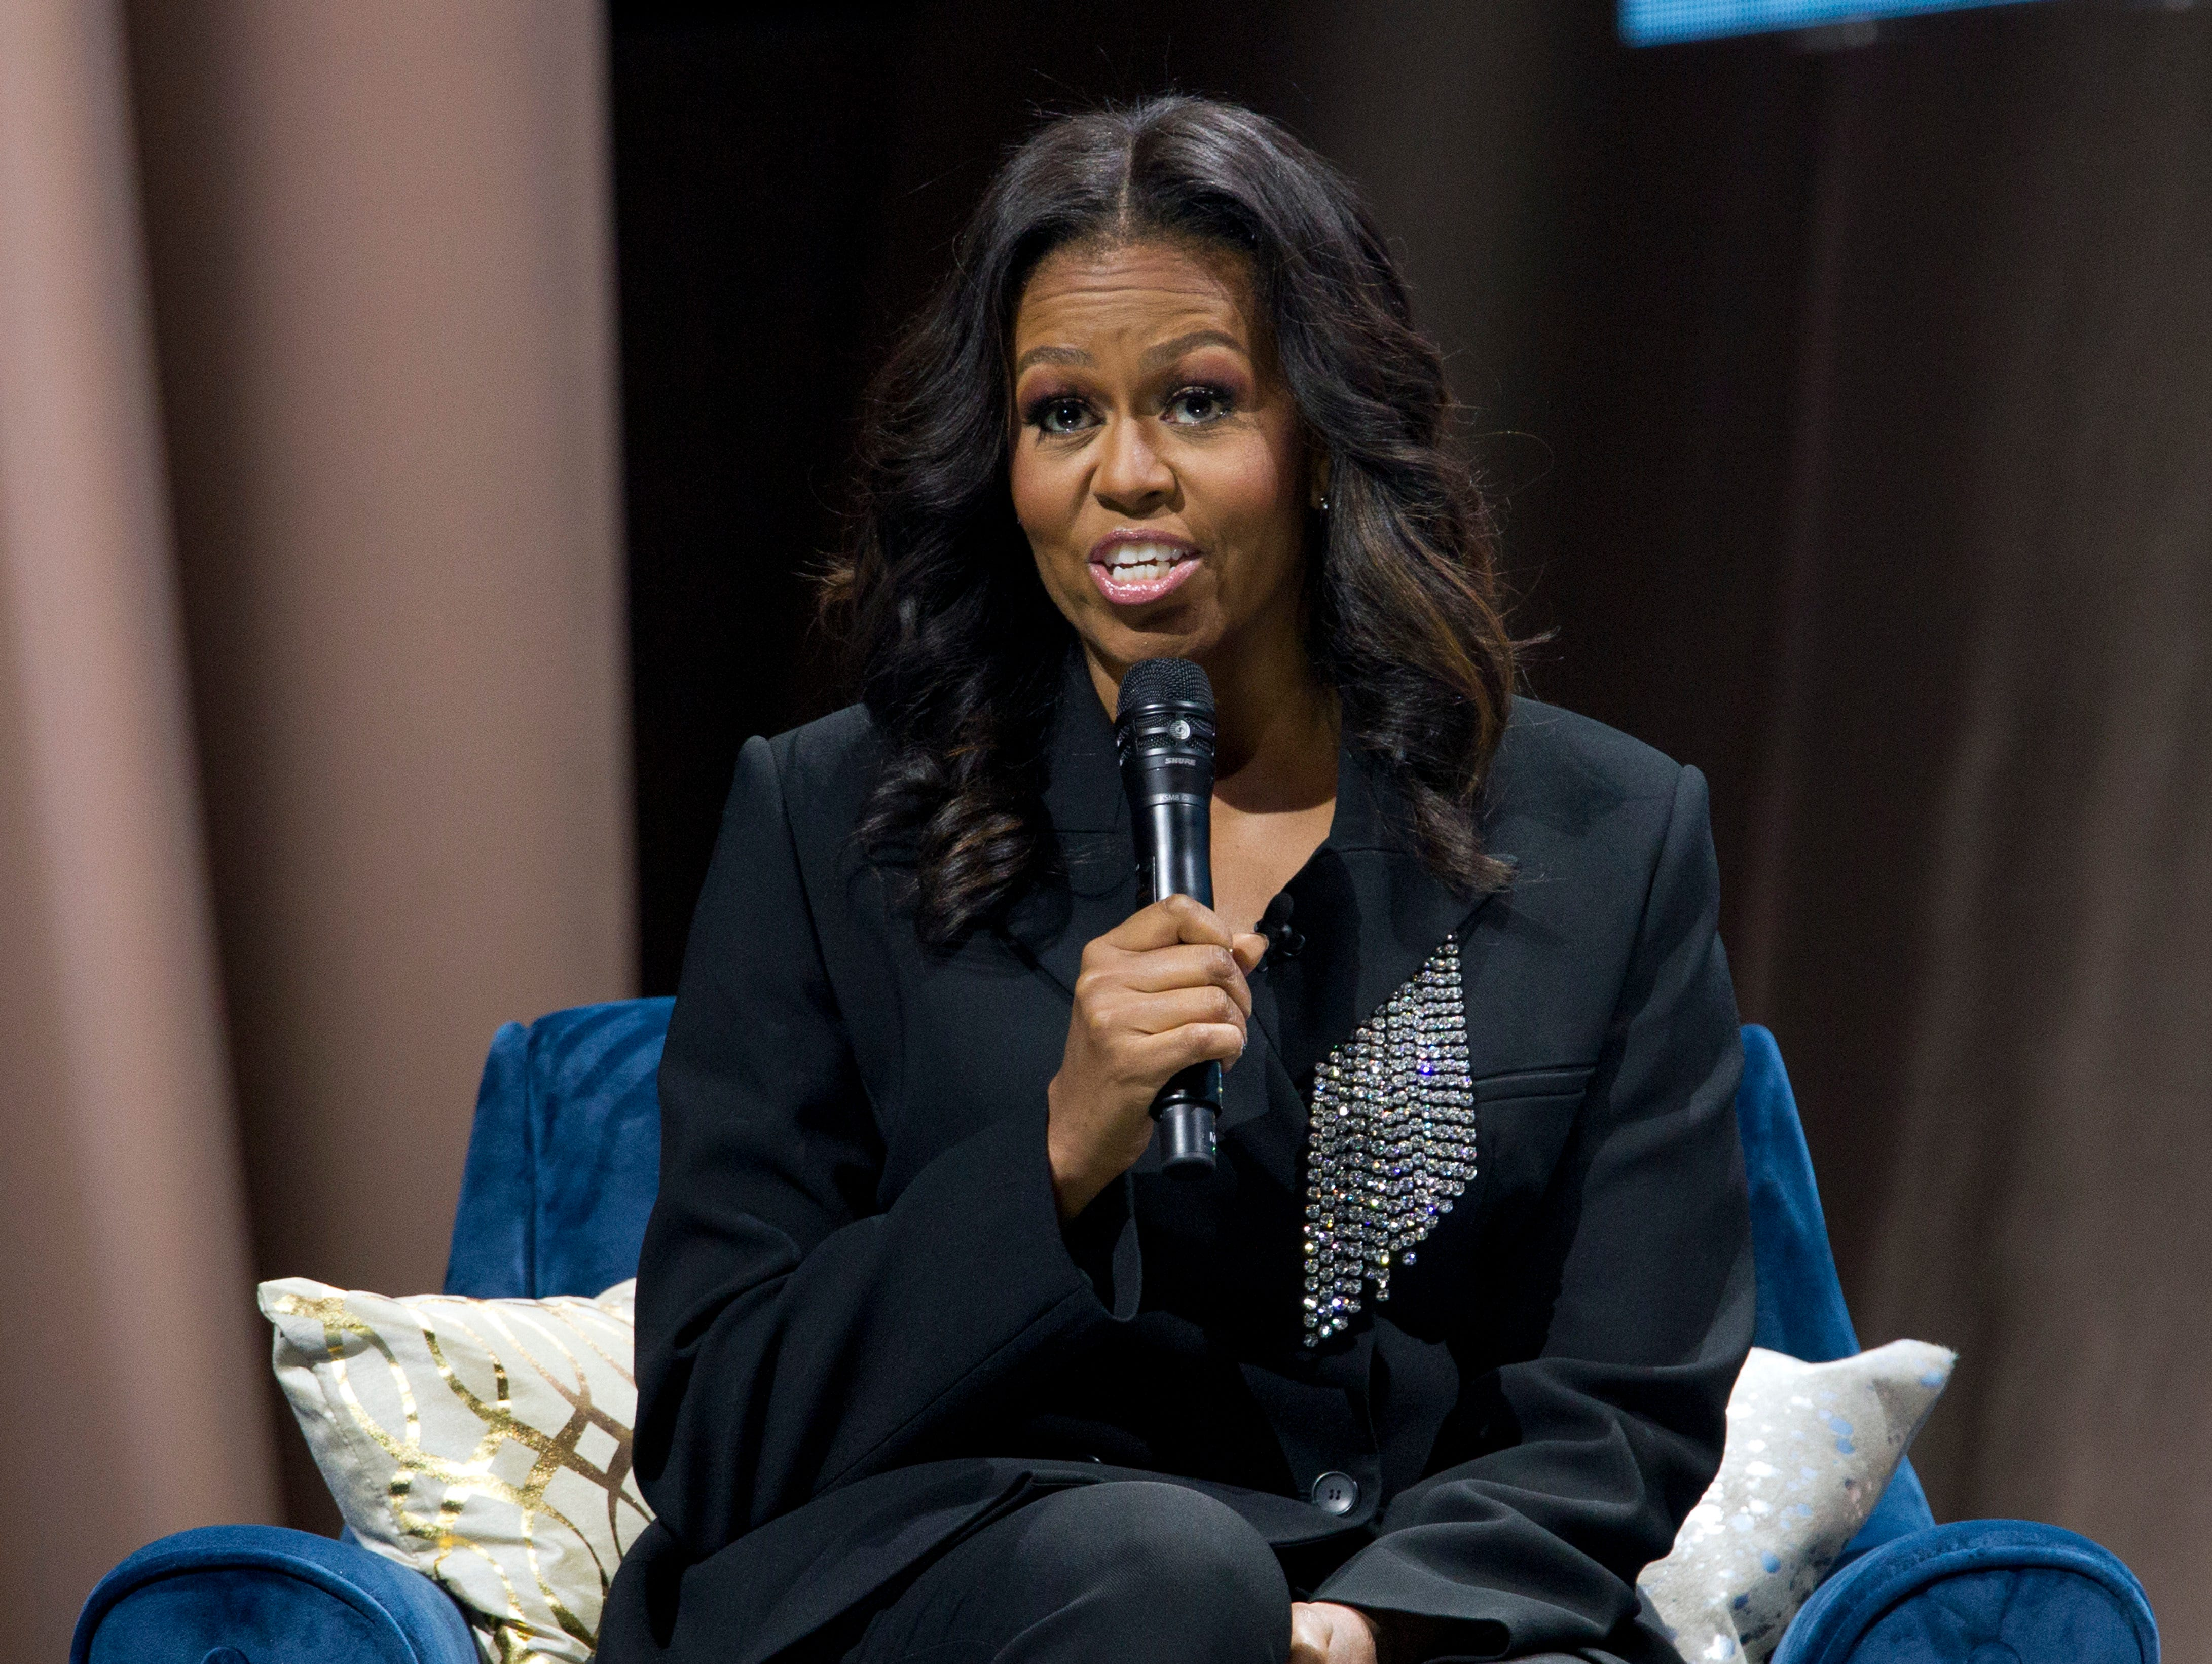 Barack Obama compares himself to Jay-Z during a surprise stop at Michelle's book tour